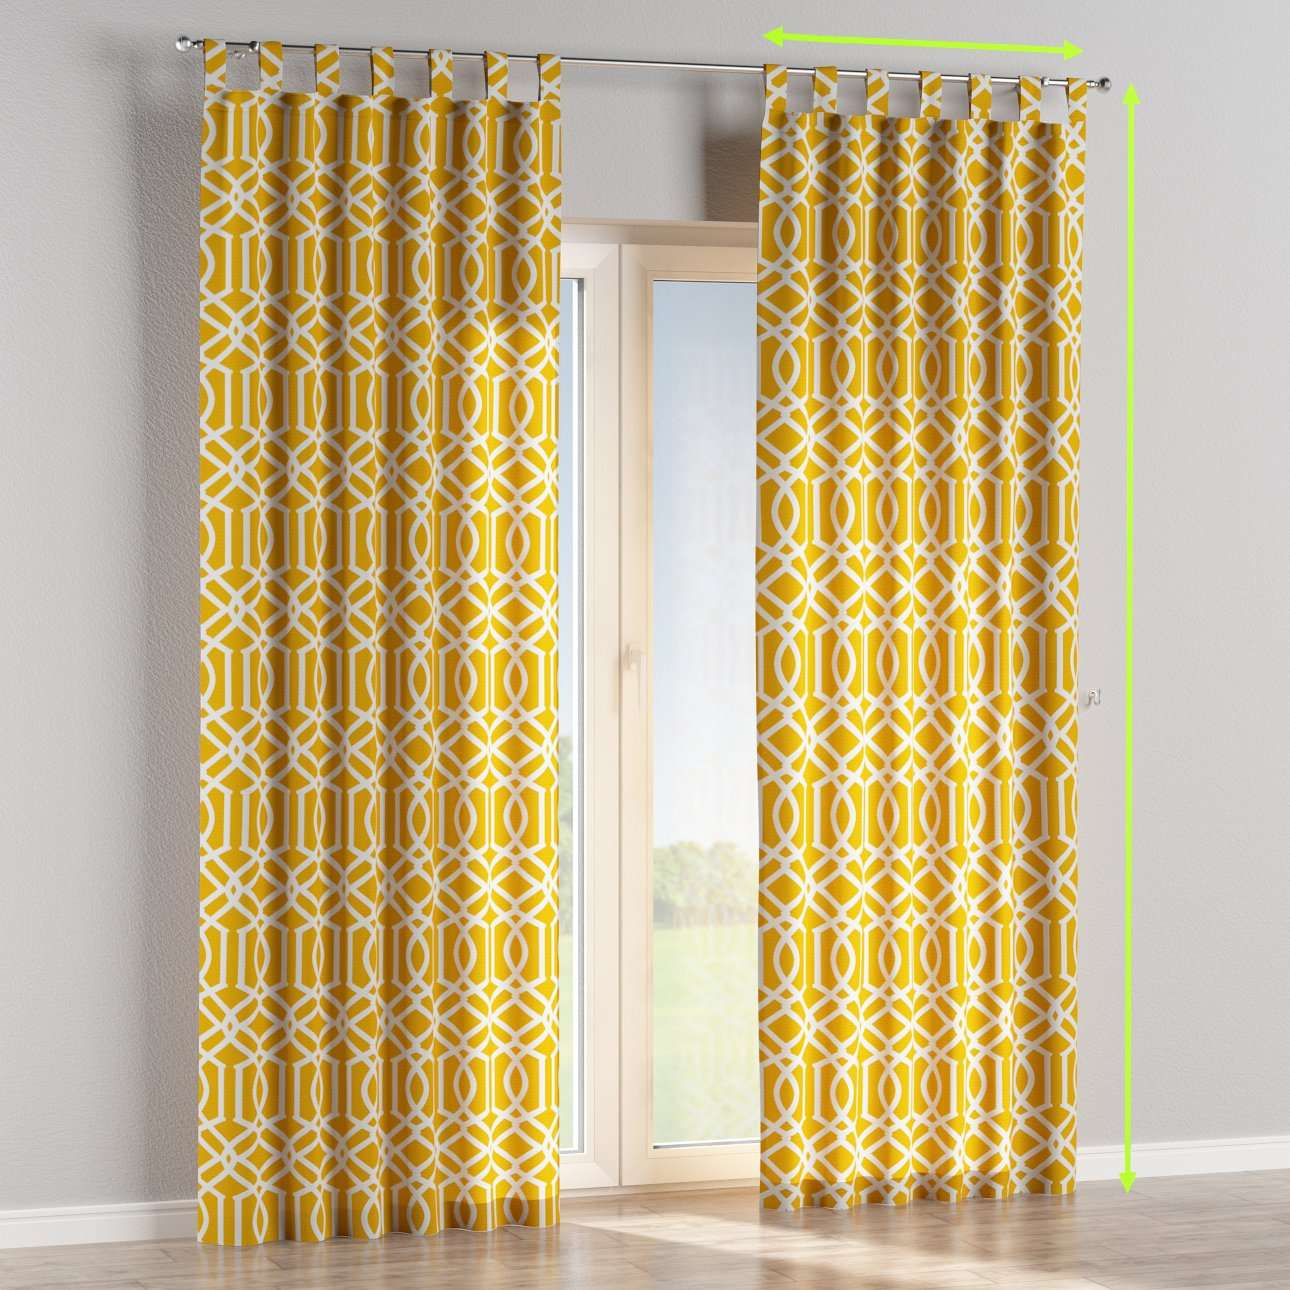 Tab top curtains in collection Comic Book & Geo Prints, fabric: 135-09